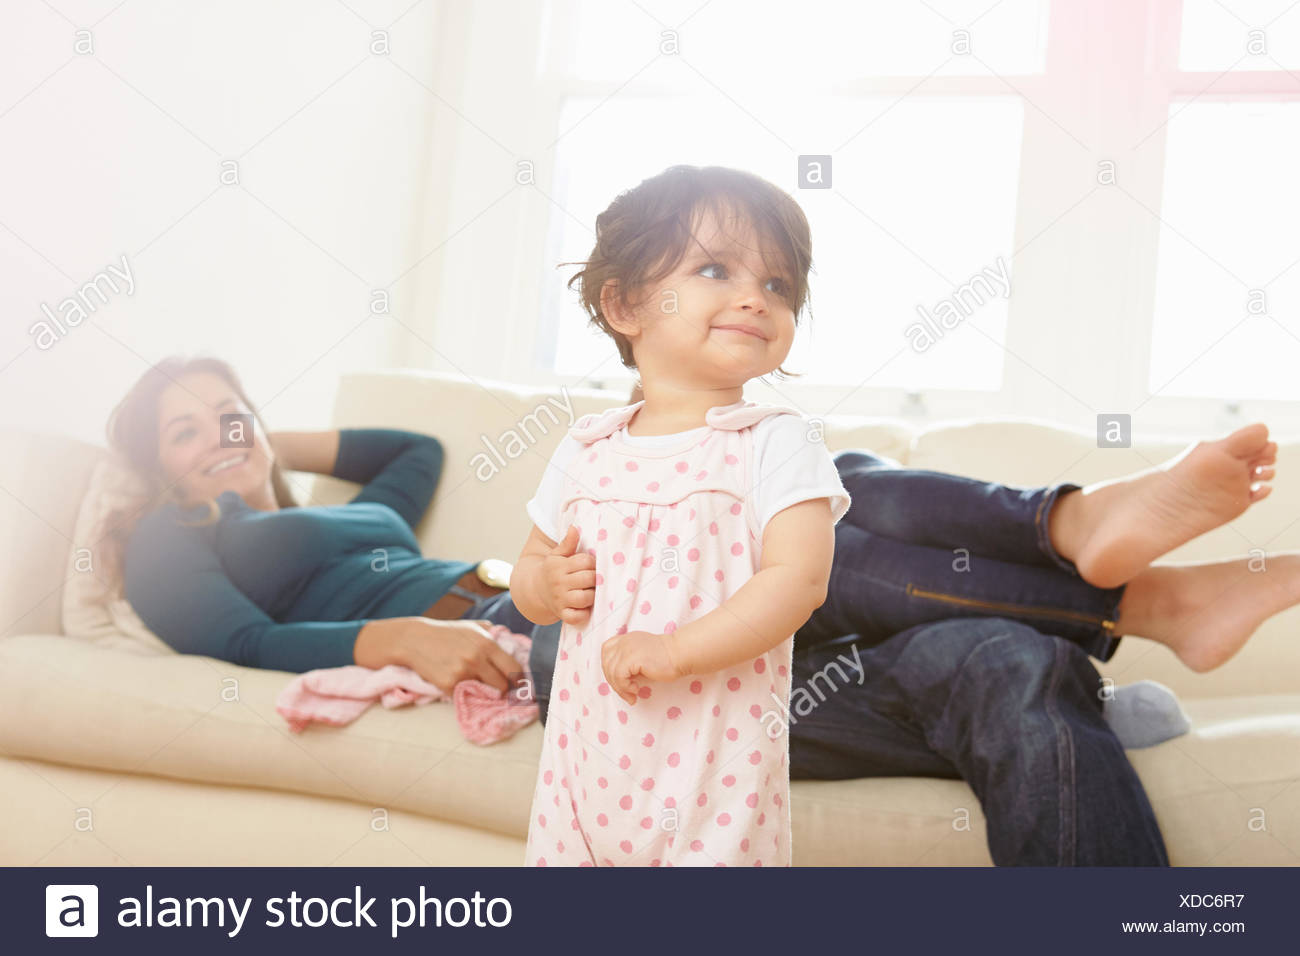 Baby girl toddling in living room with parents watching - Stock Image